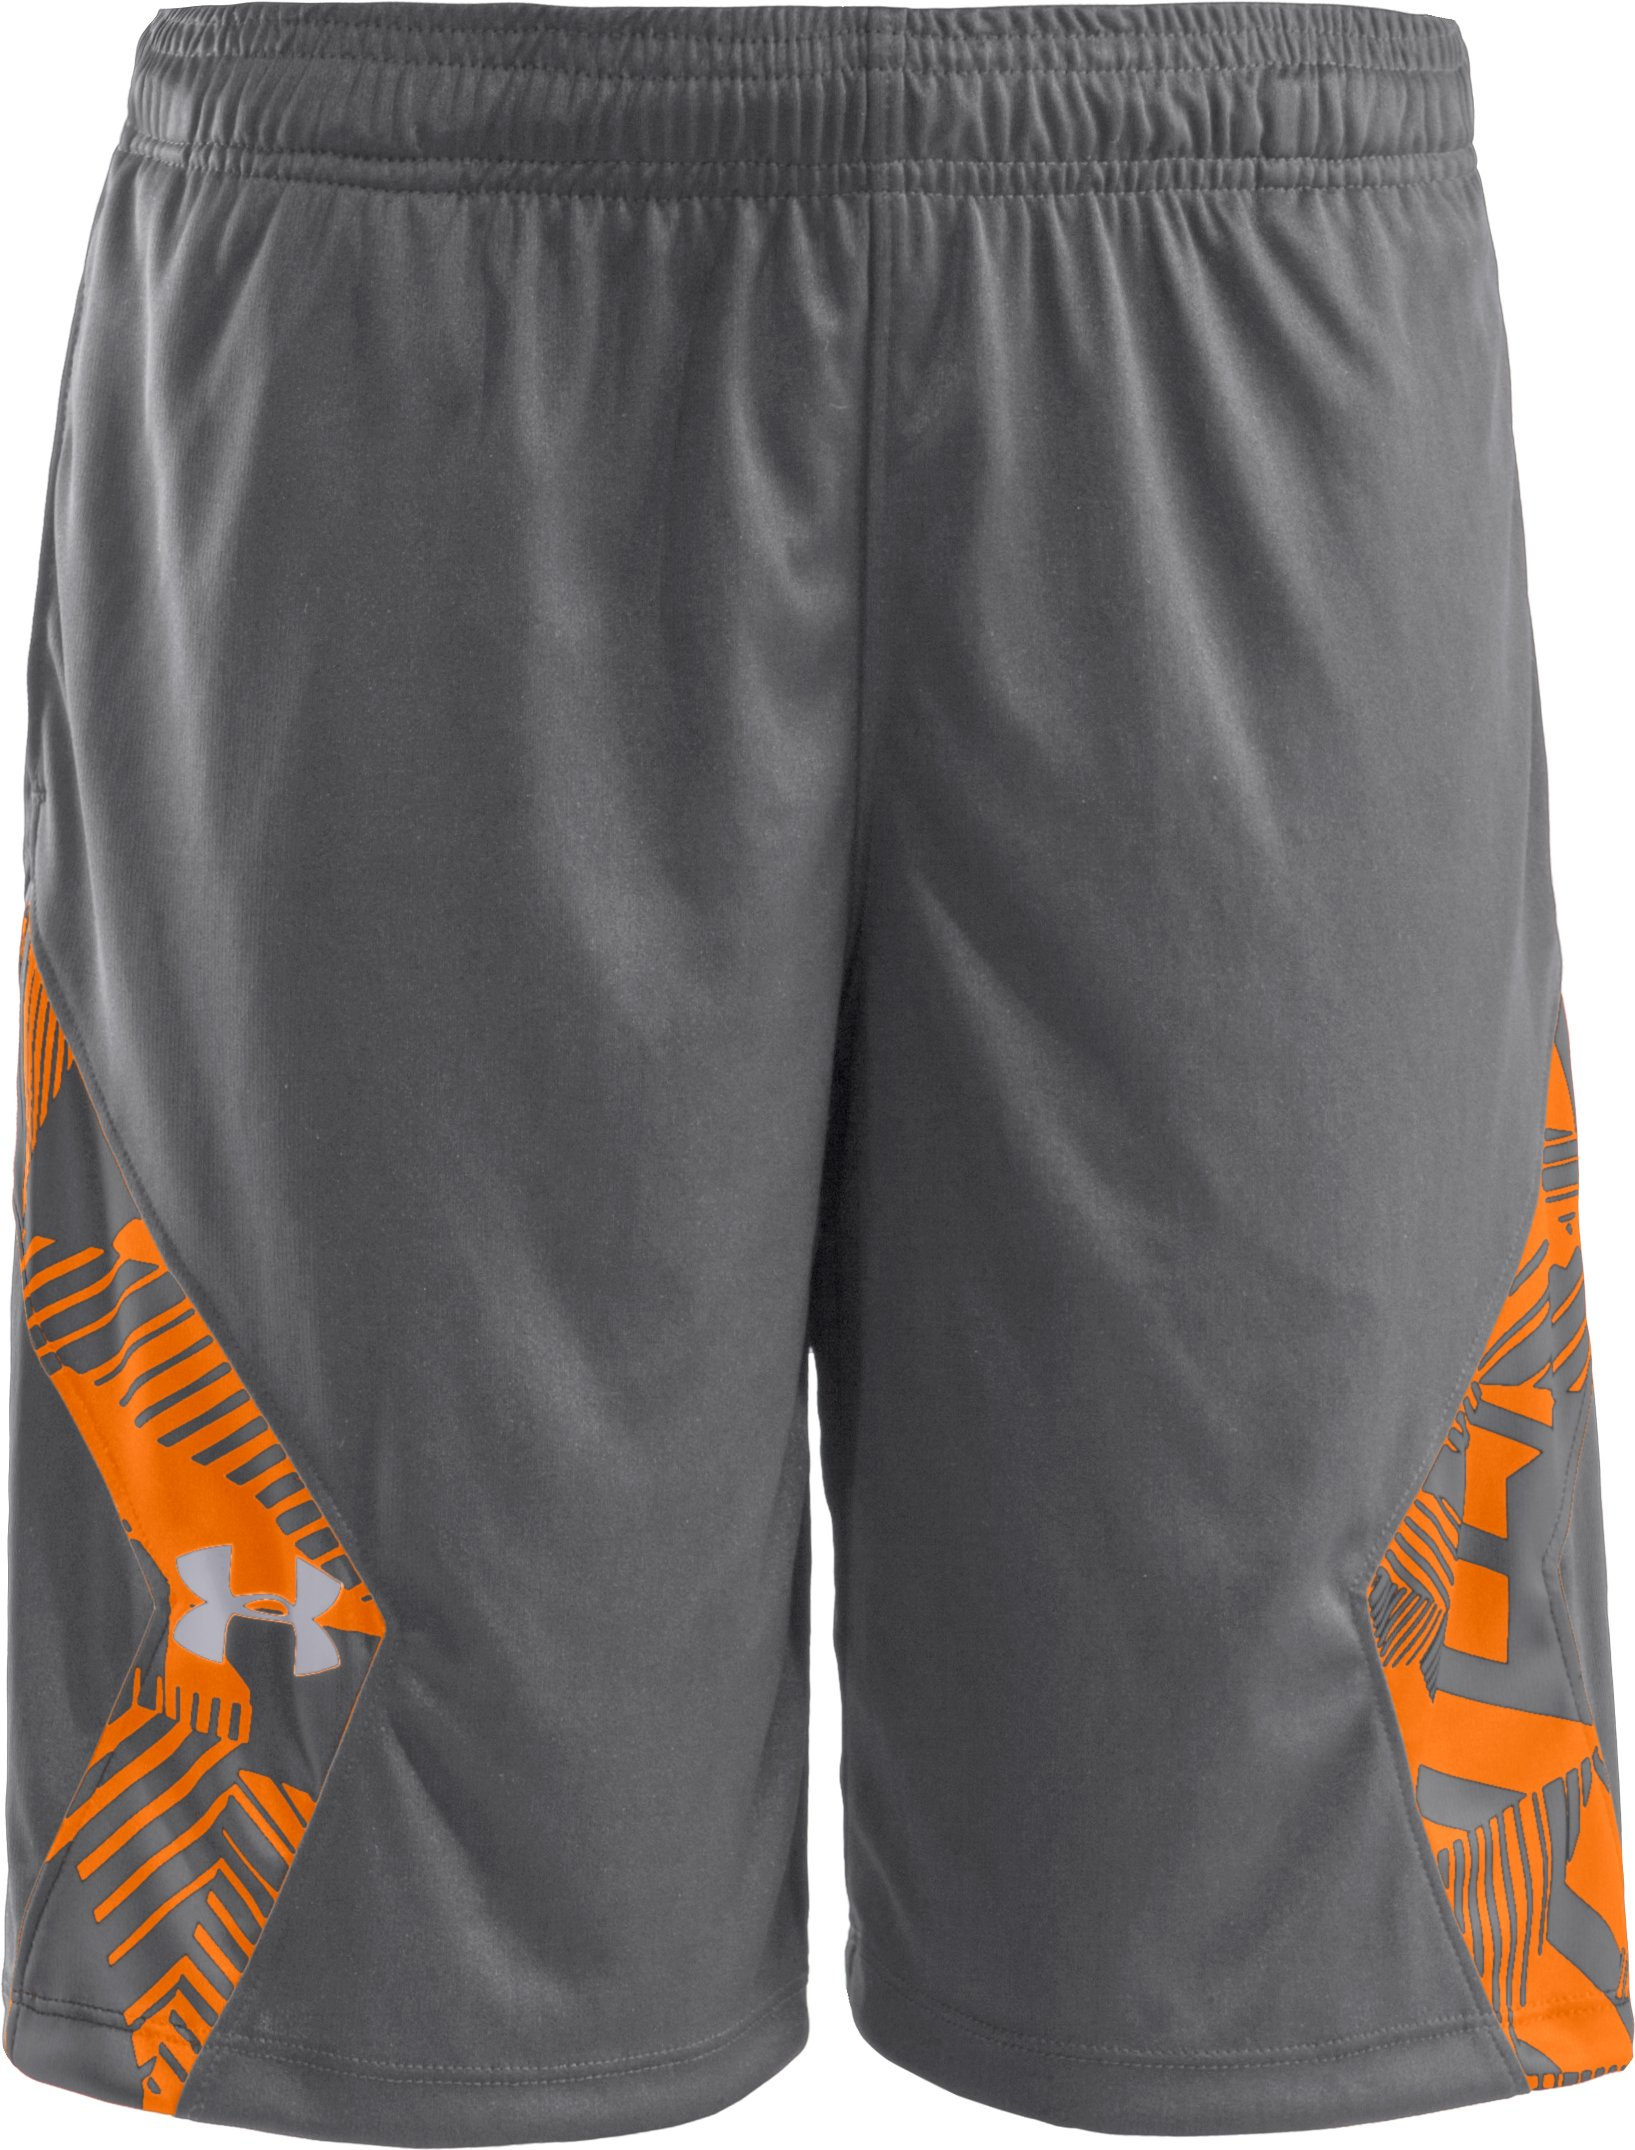 Boys' UA Domineer Shorts, Graphite, zoomed image